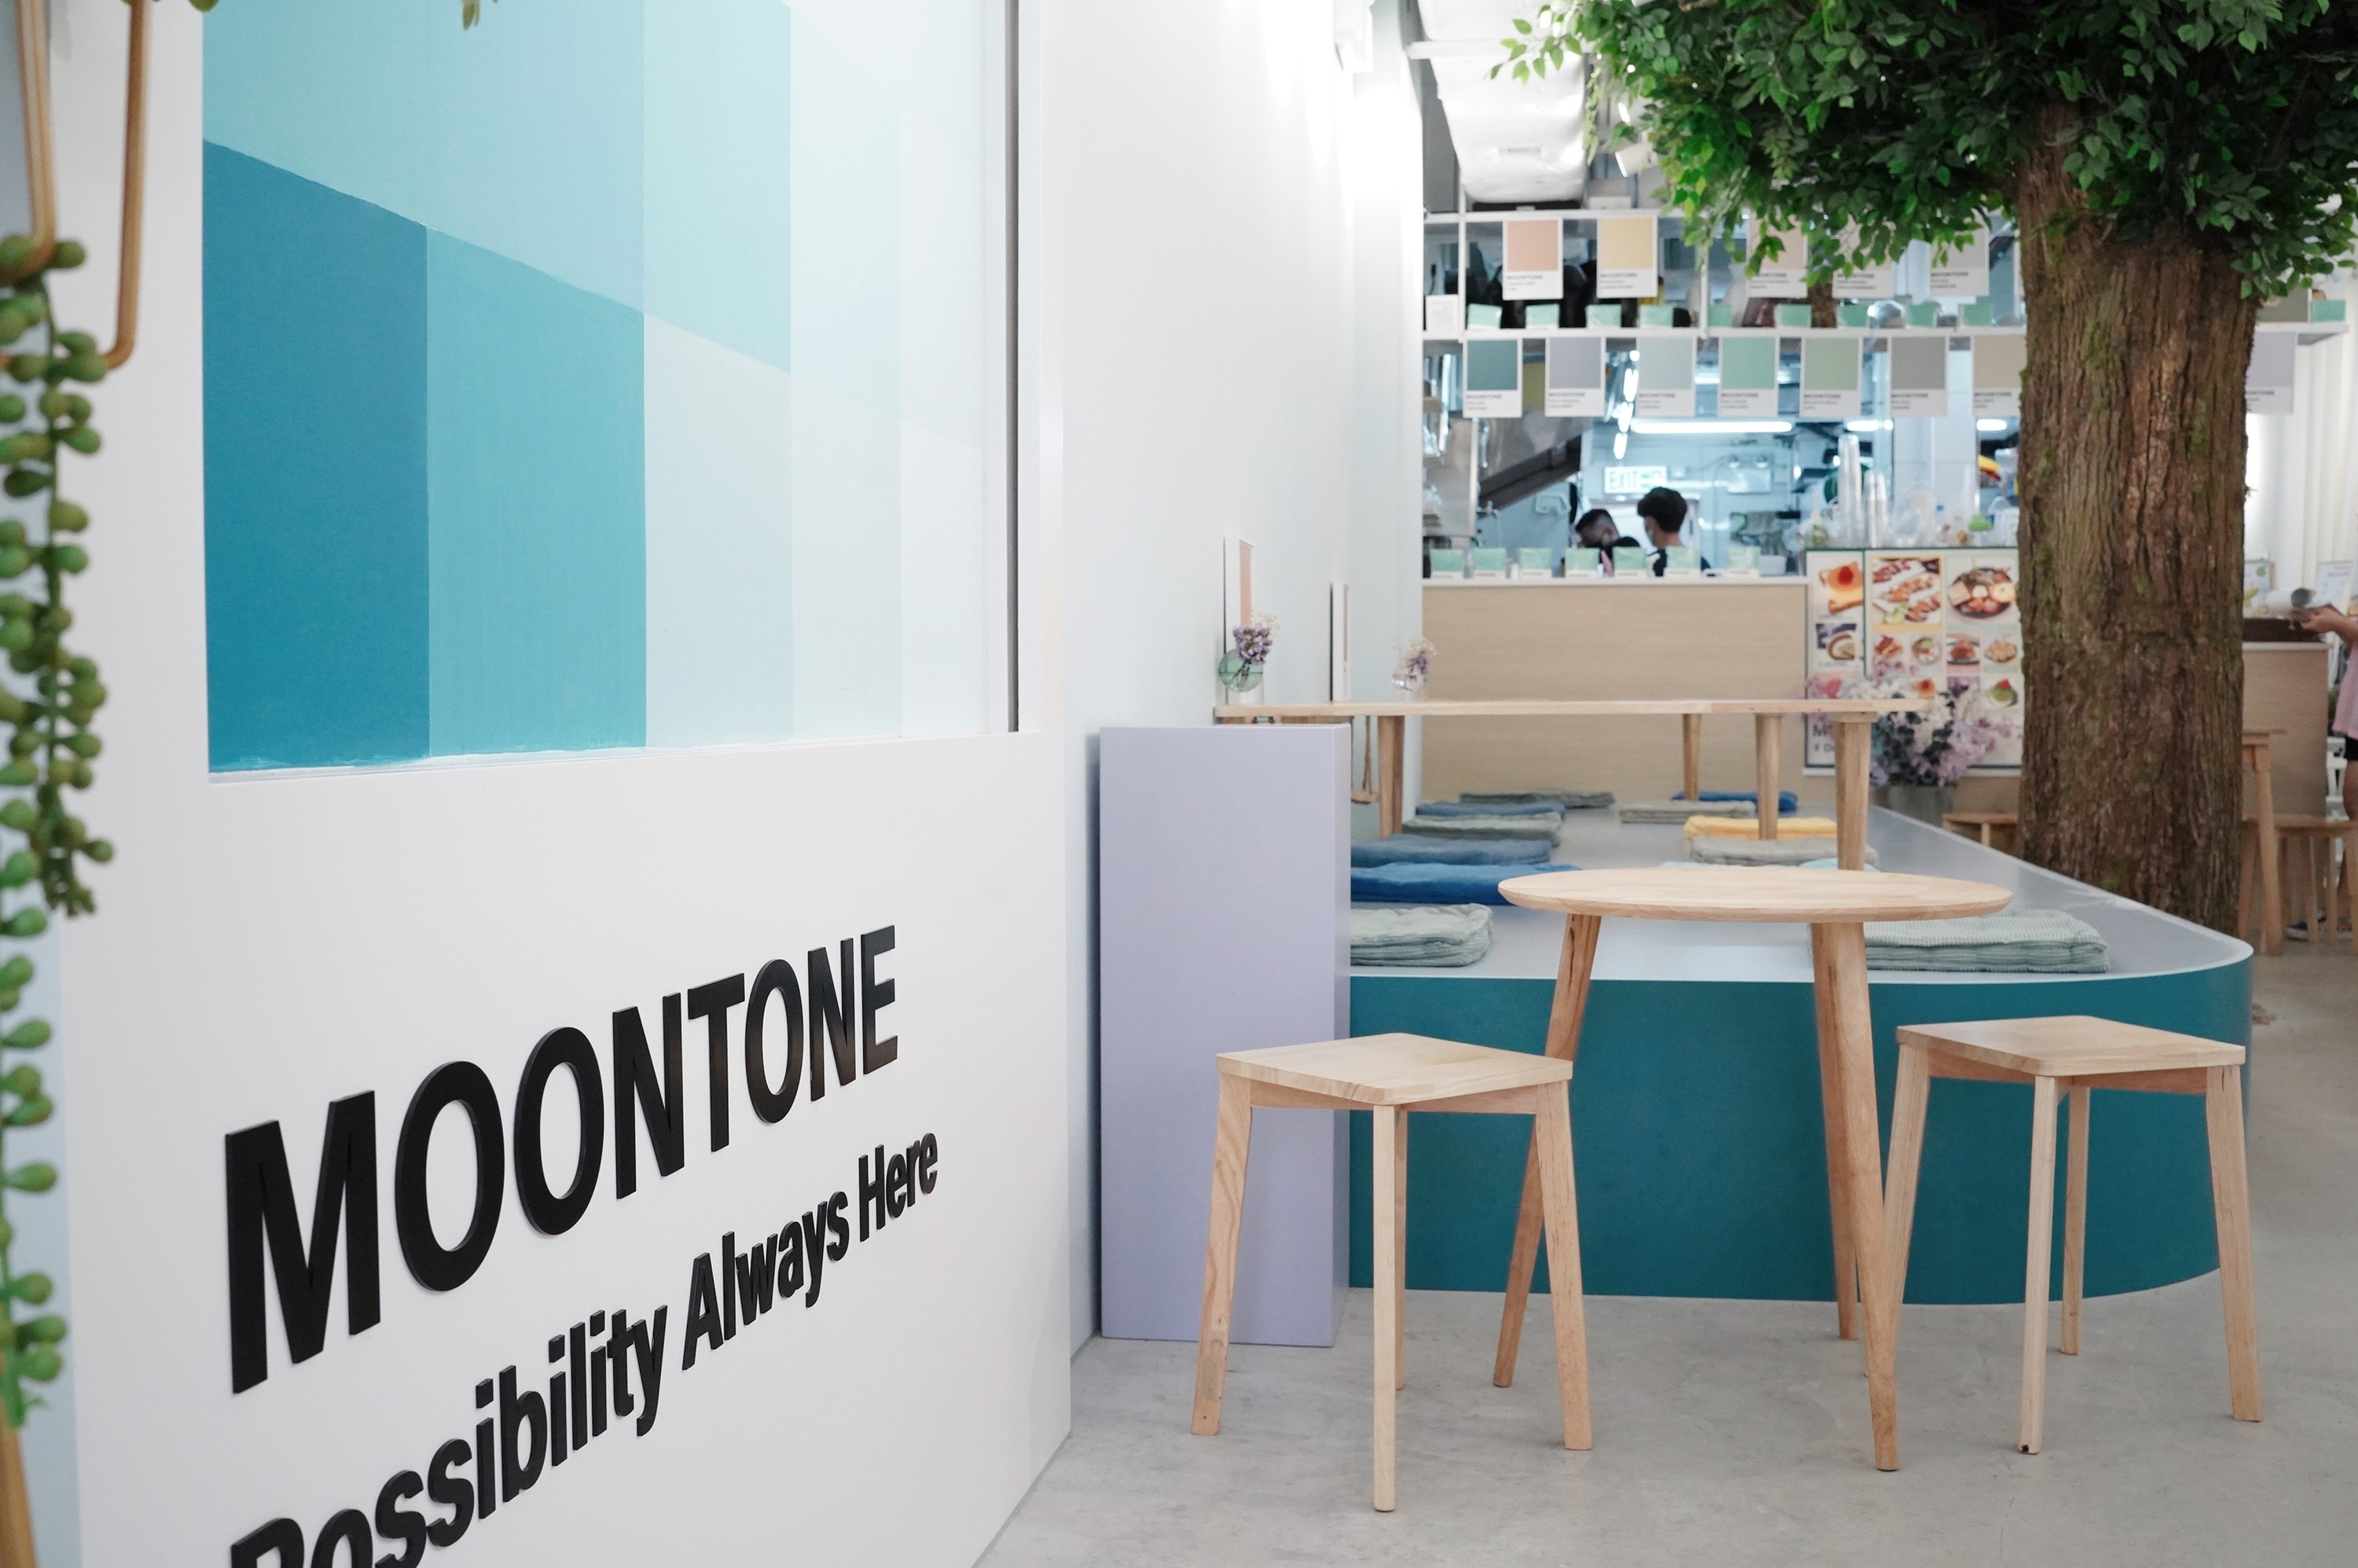 Moontone is Prince Edward's newest pet-friendly and Pantone-styled cafe